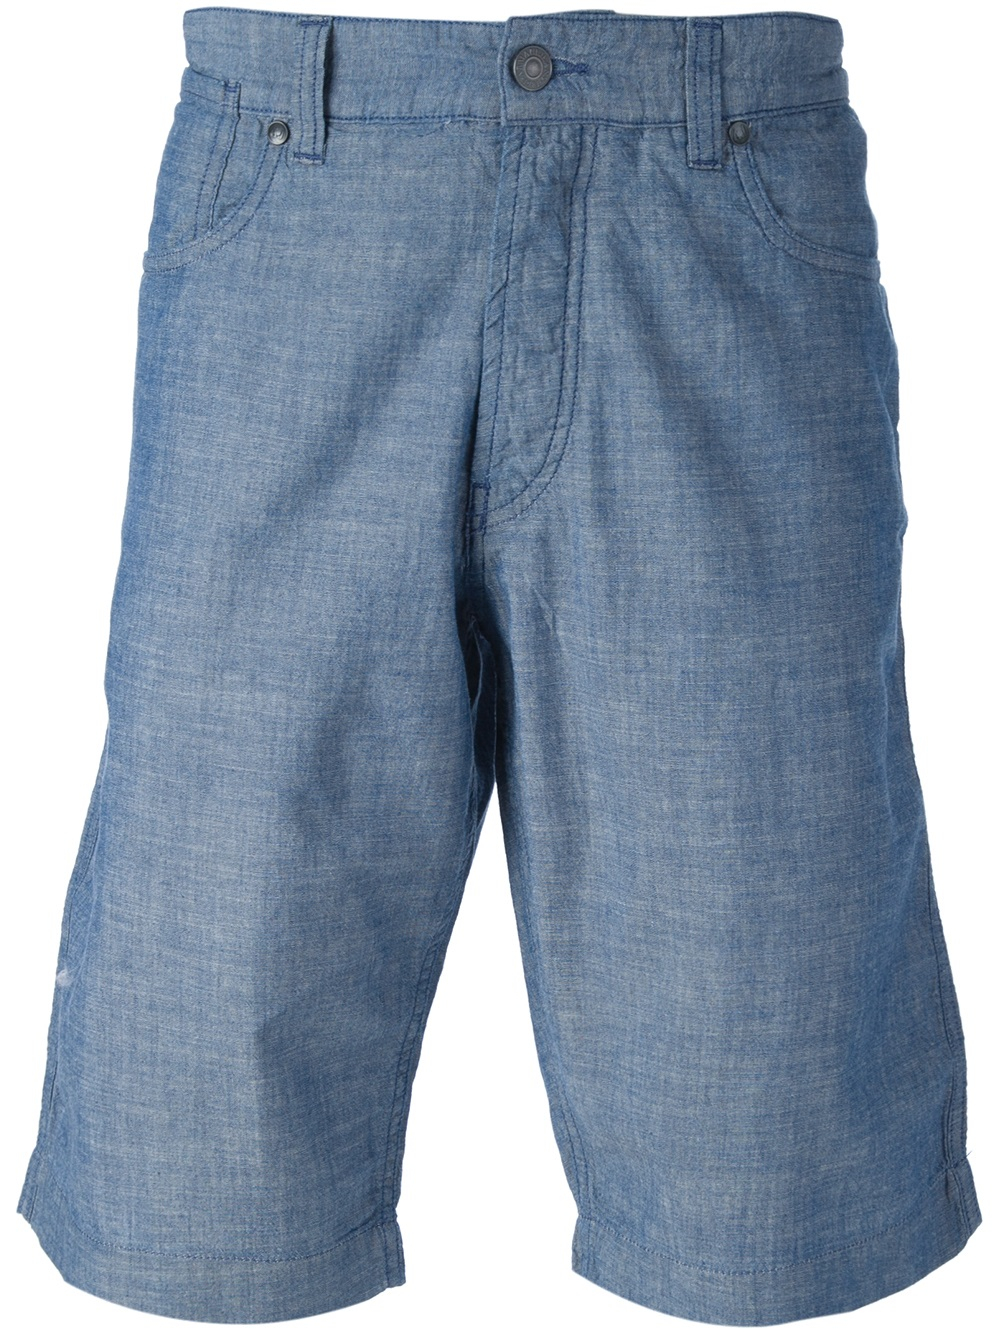 Armani jeans chambray bermuda shorts in blue for men lyst for Chambray jeans